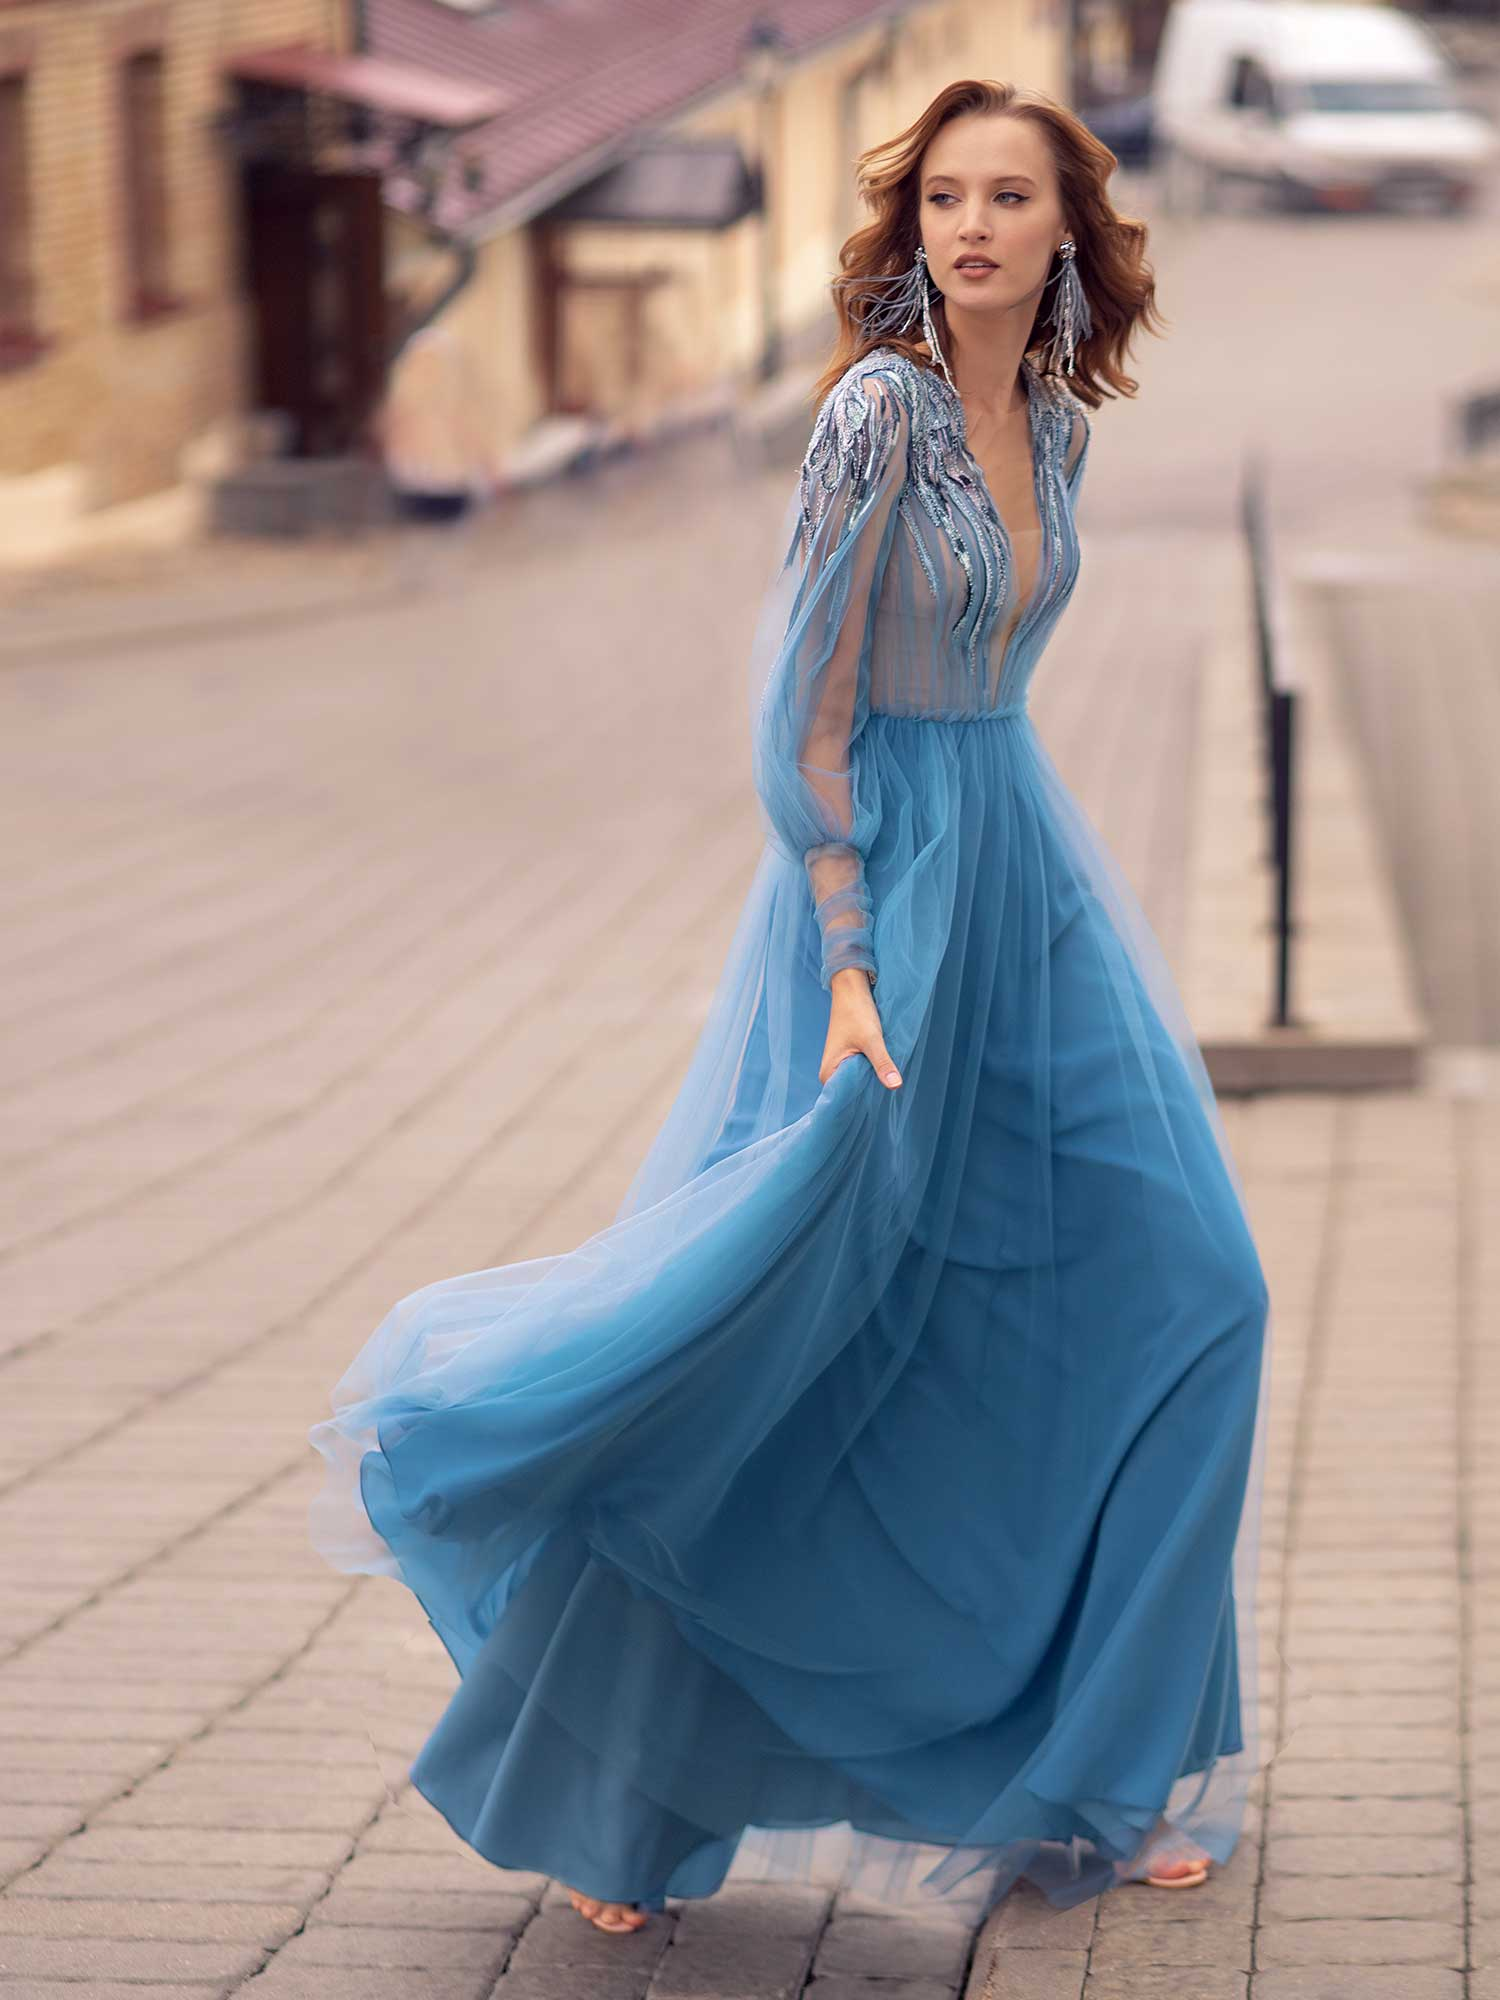 Style #555, long gown with bishop sleeves and embellishments, available in azure, azure-powder